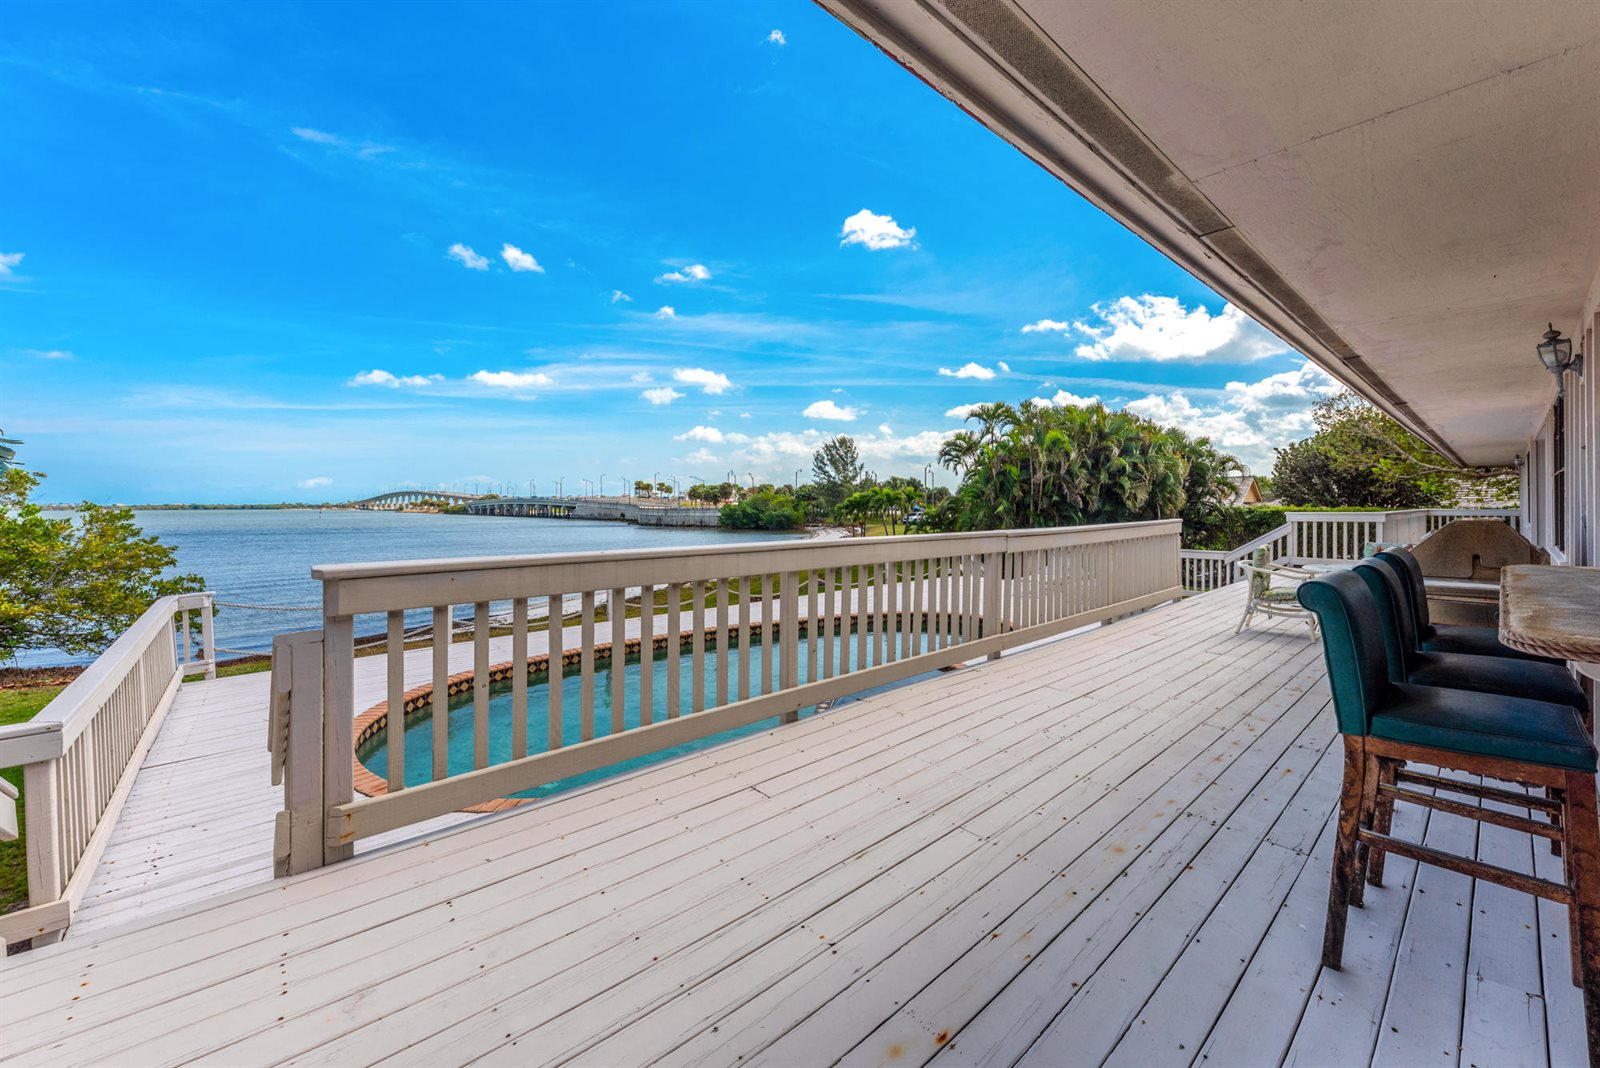 6 North Sewalls Point Road, Stuart, FL 34996